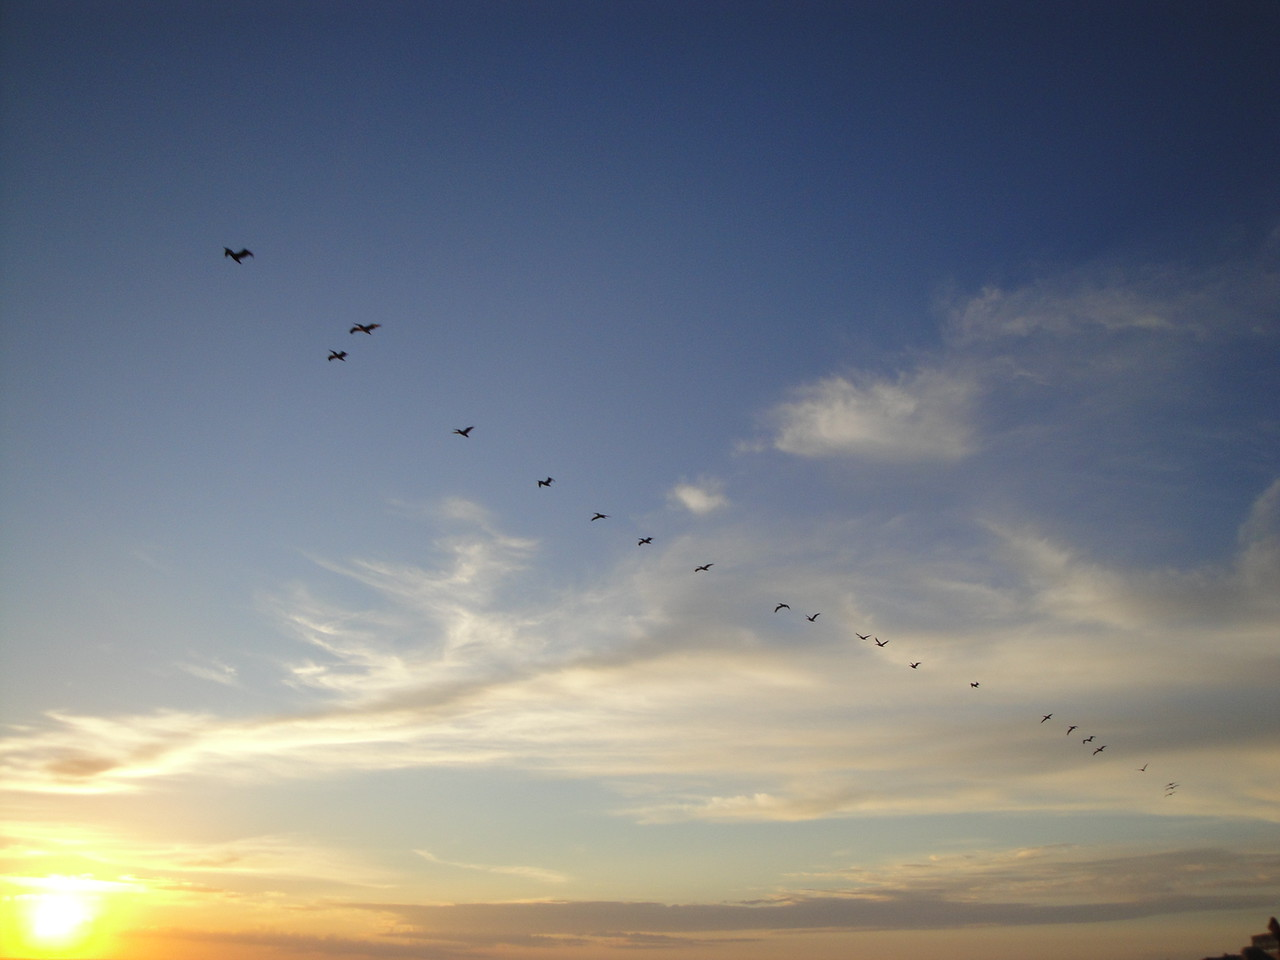 A squadron flies over the Sea of Cortez, Mexico